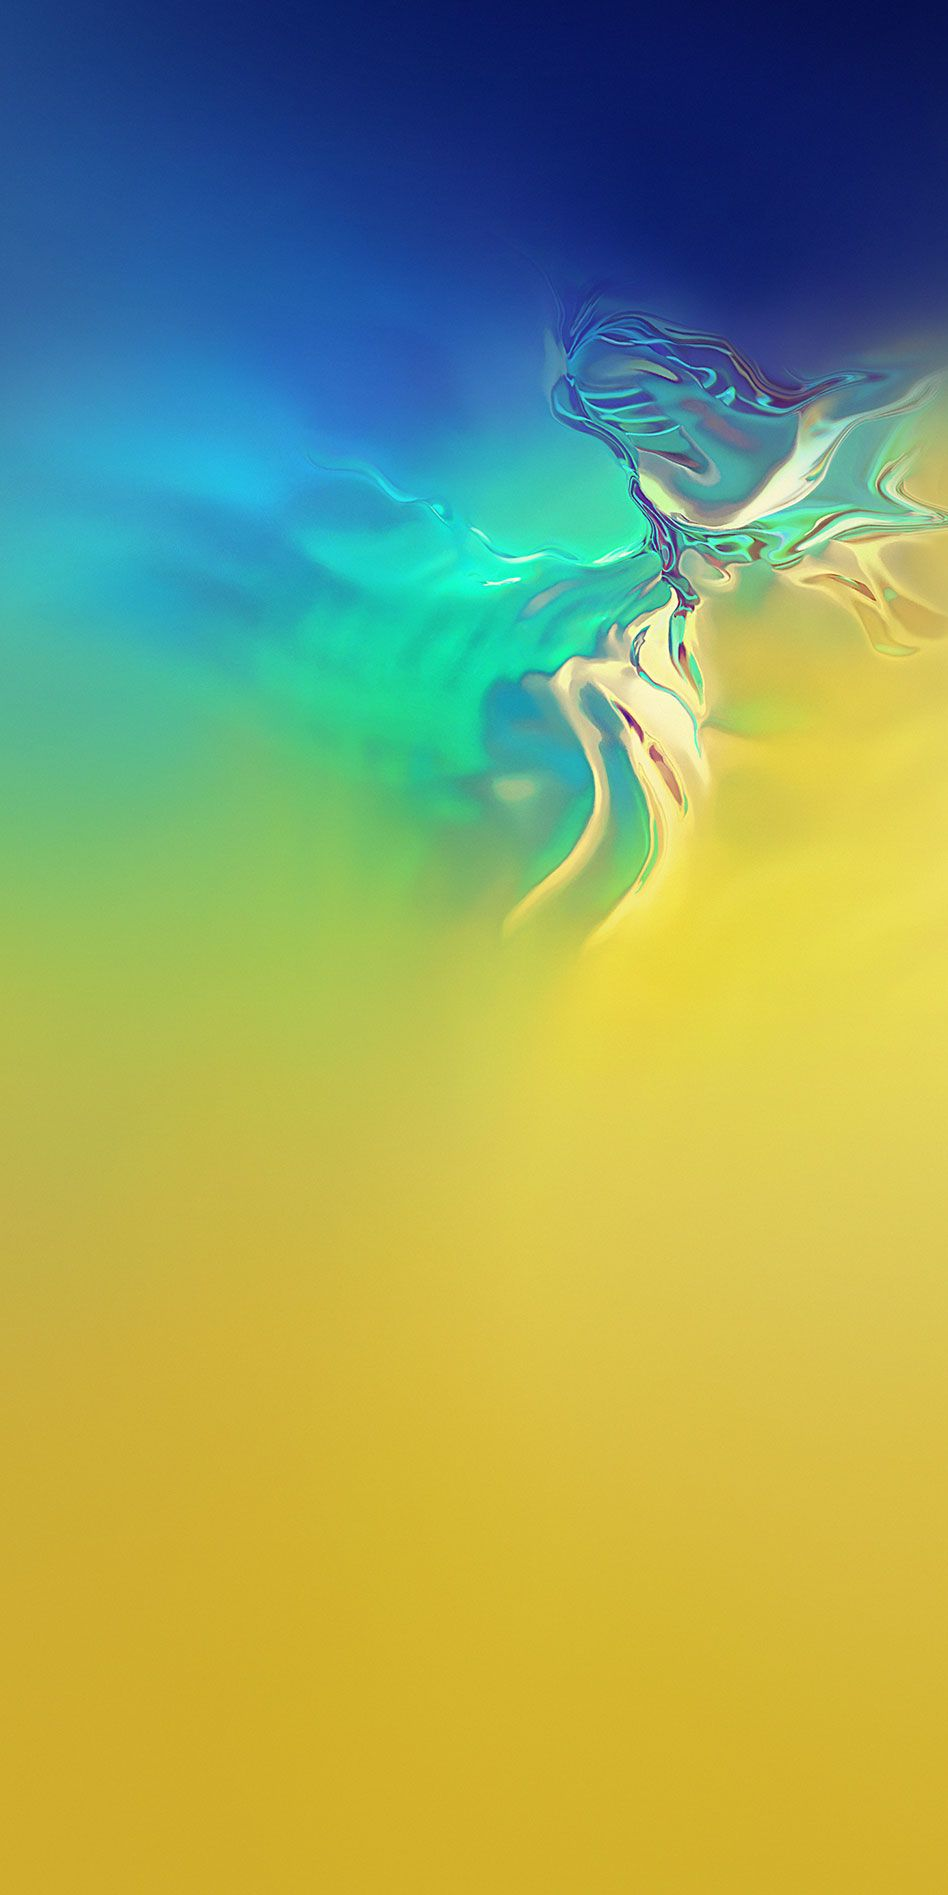 Download S10 Wallpaper Download Hd Samsung Wallpaper Android Abstract Iphone Wallpaper Huawei Wallpapers